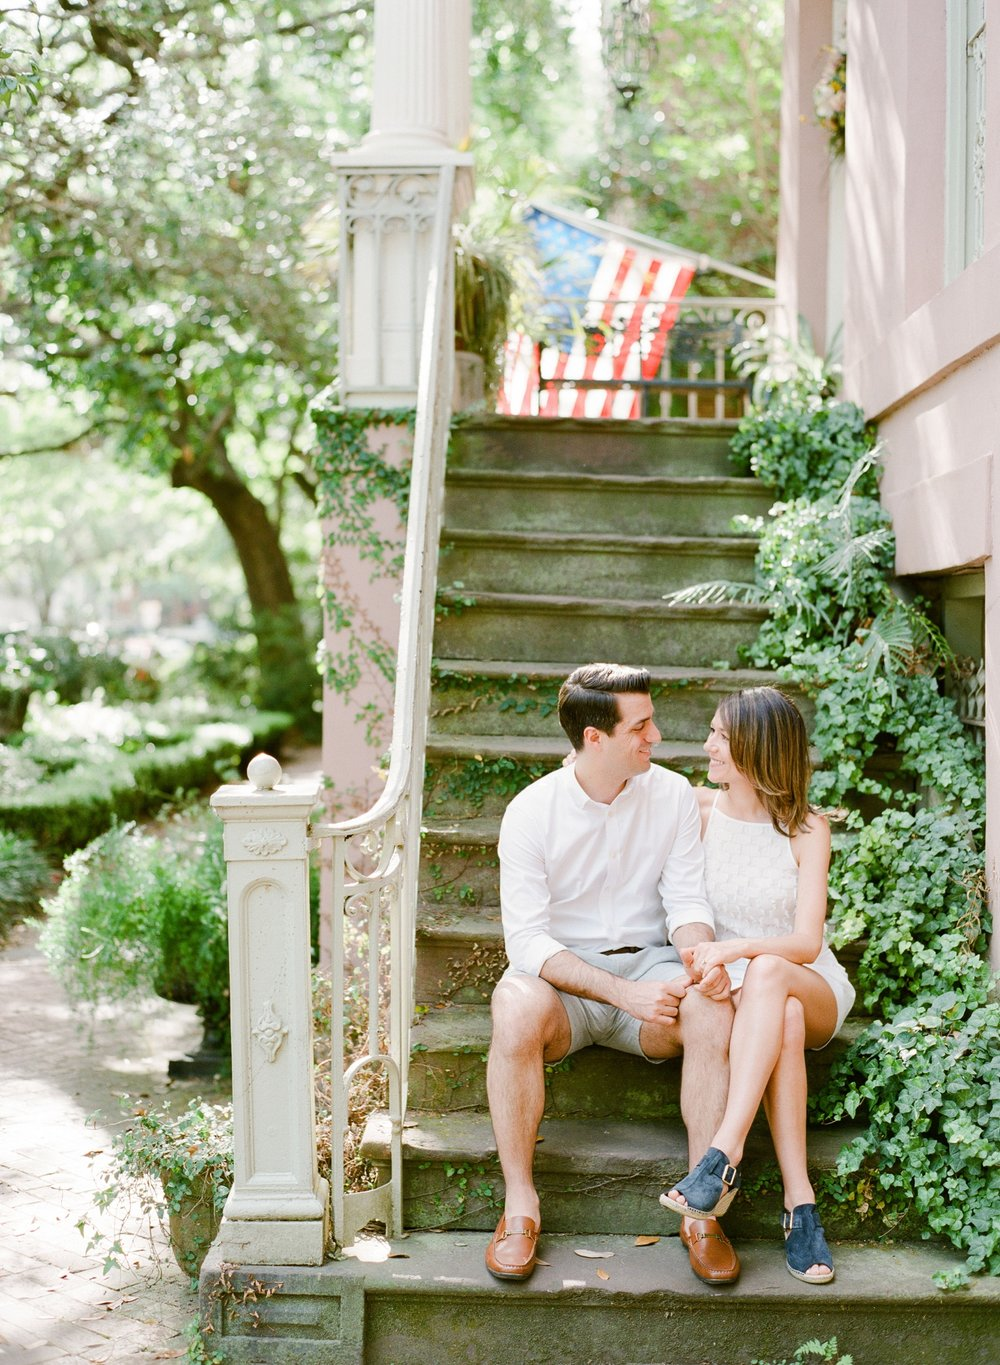 Downtown-Savannah-Georgia-Engagement-Session-By-The-Happy-Bloom_0089.jpg